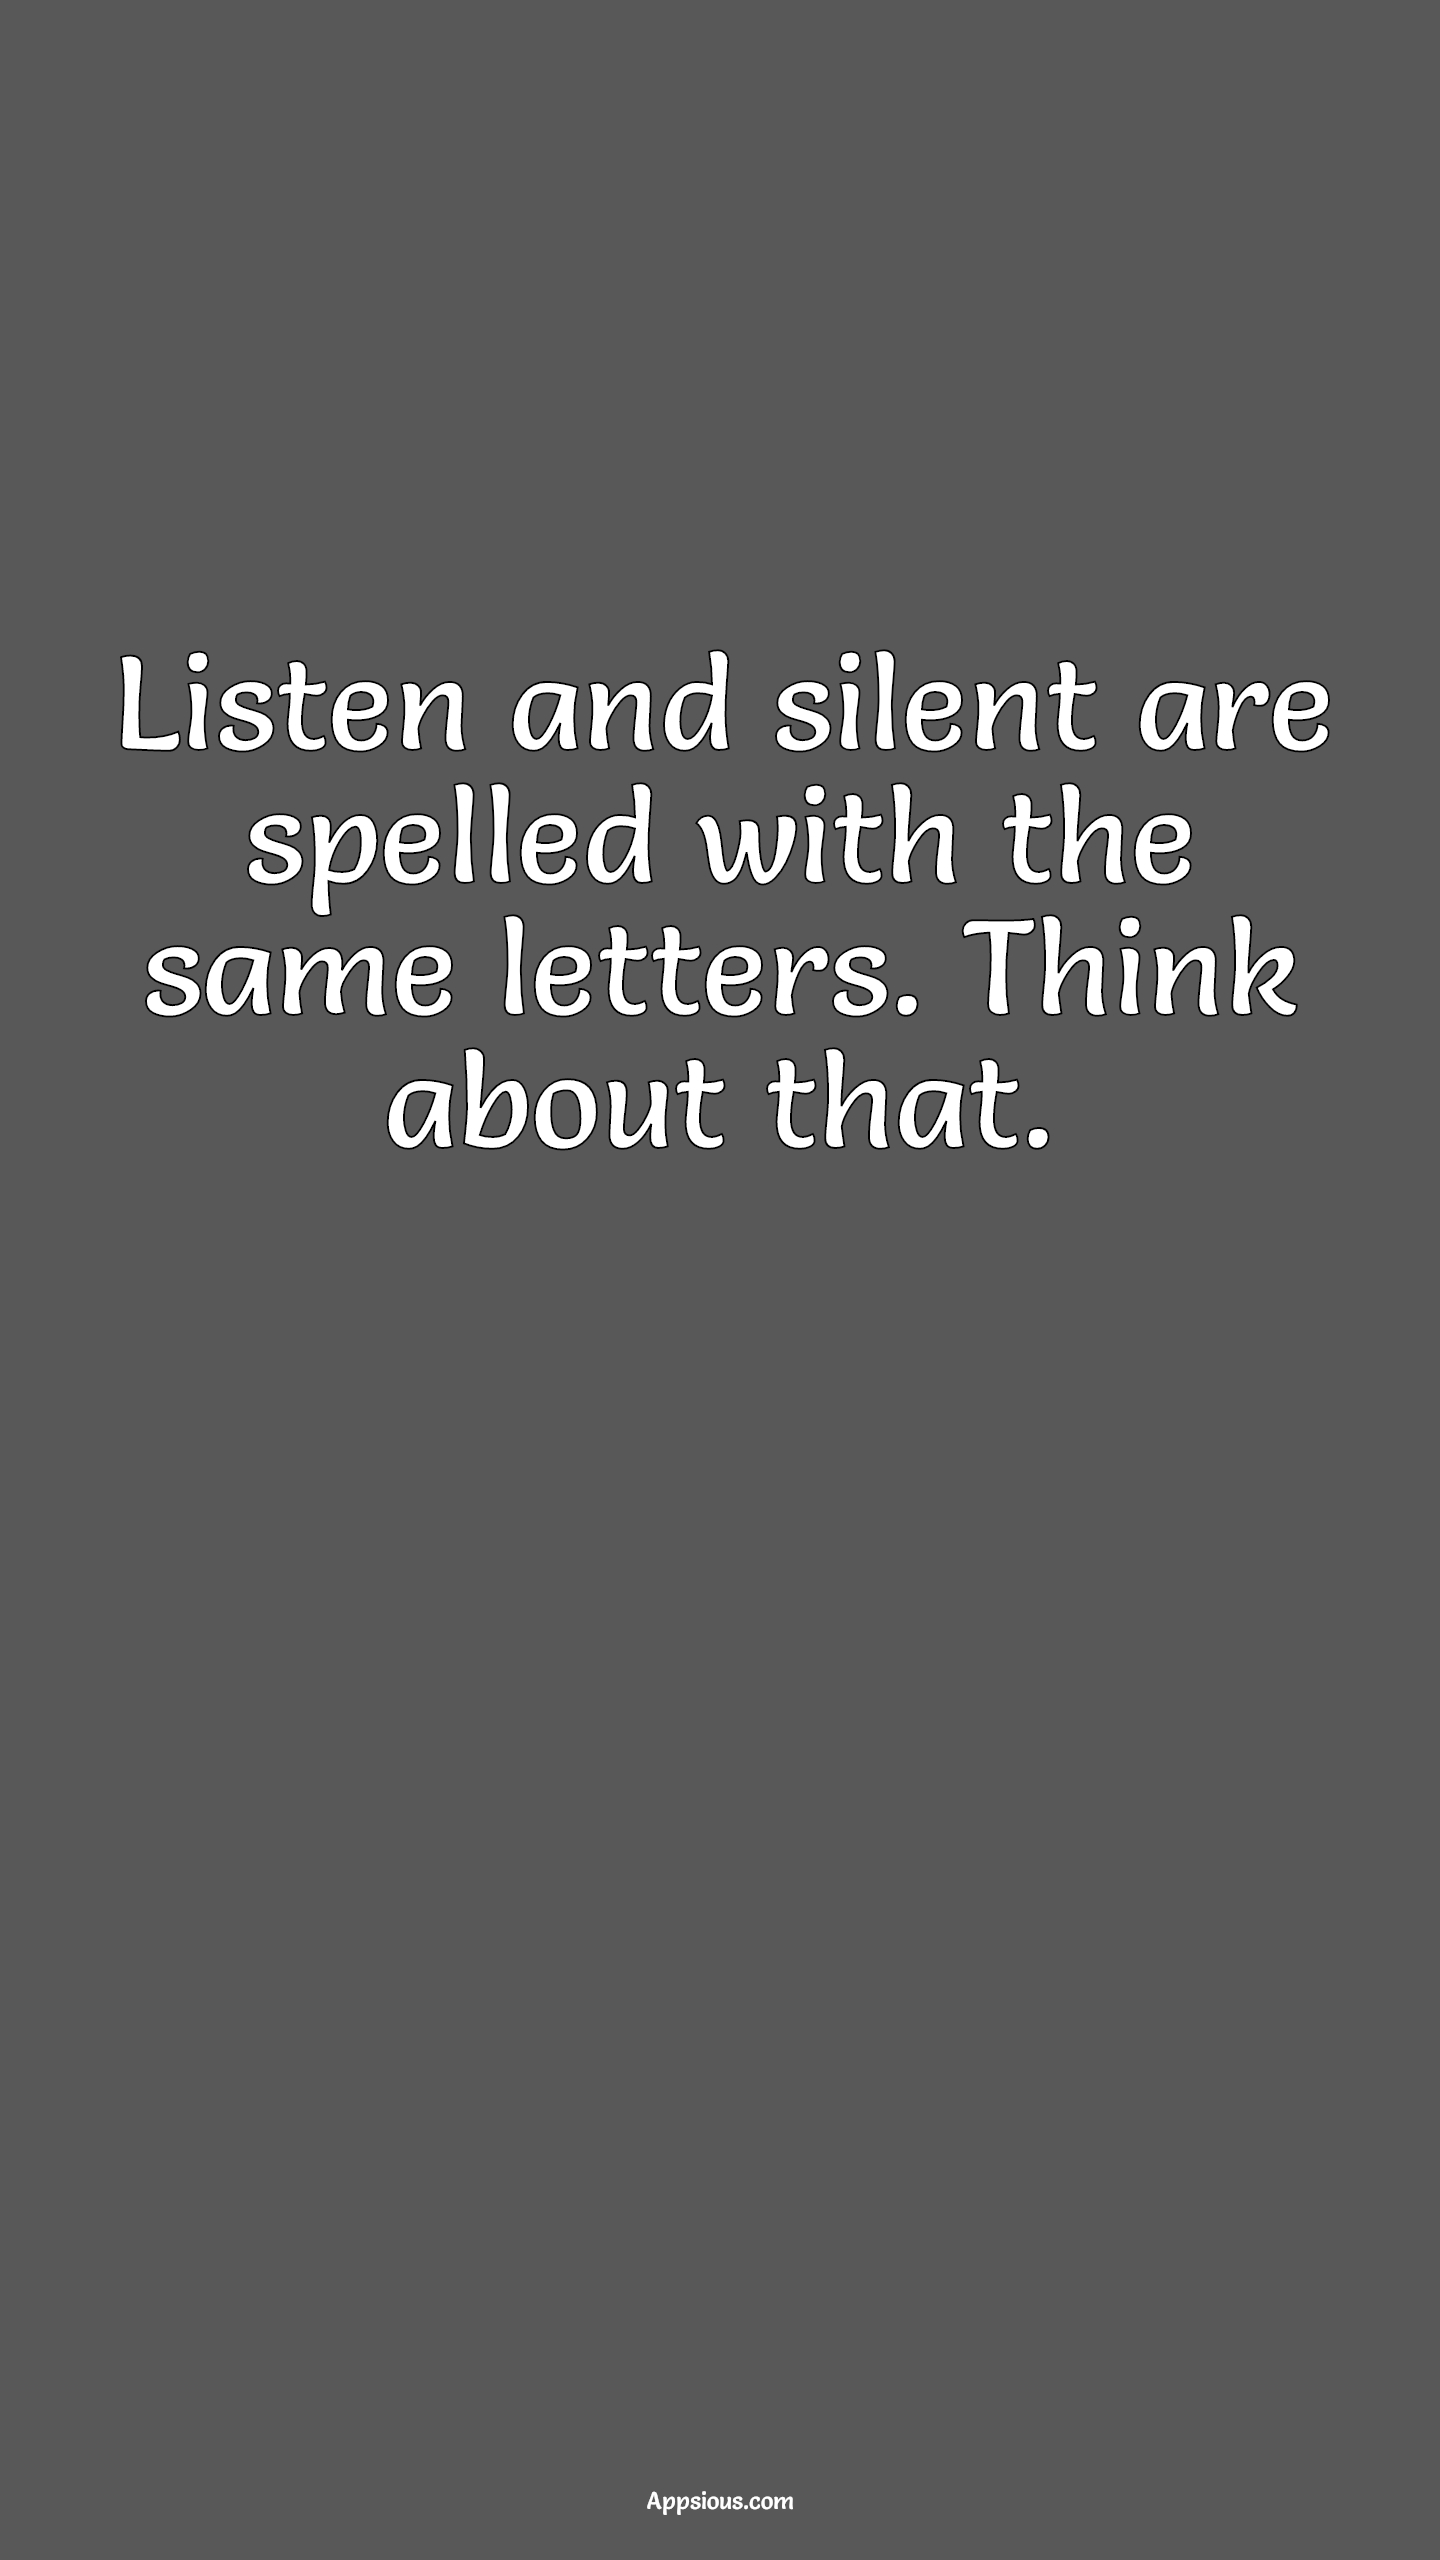 Listen and silent are spelled with the same letters. Think about that.